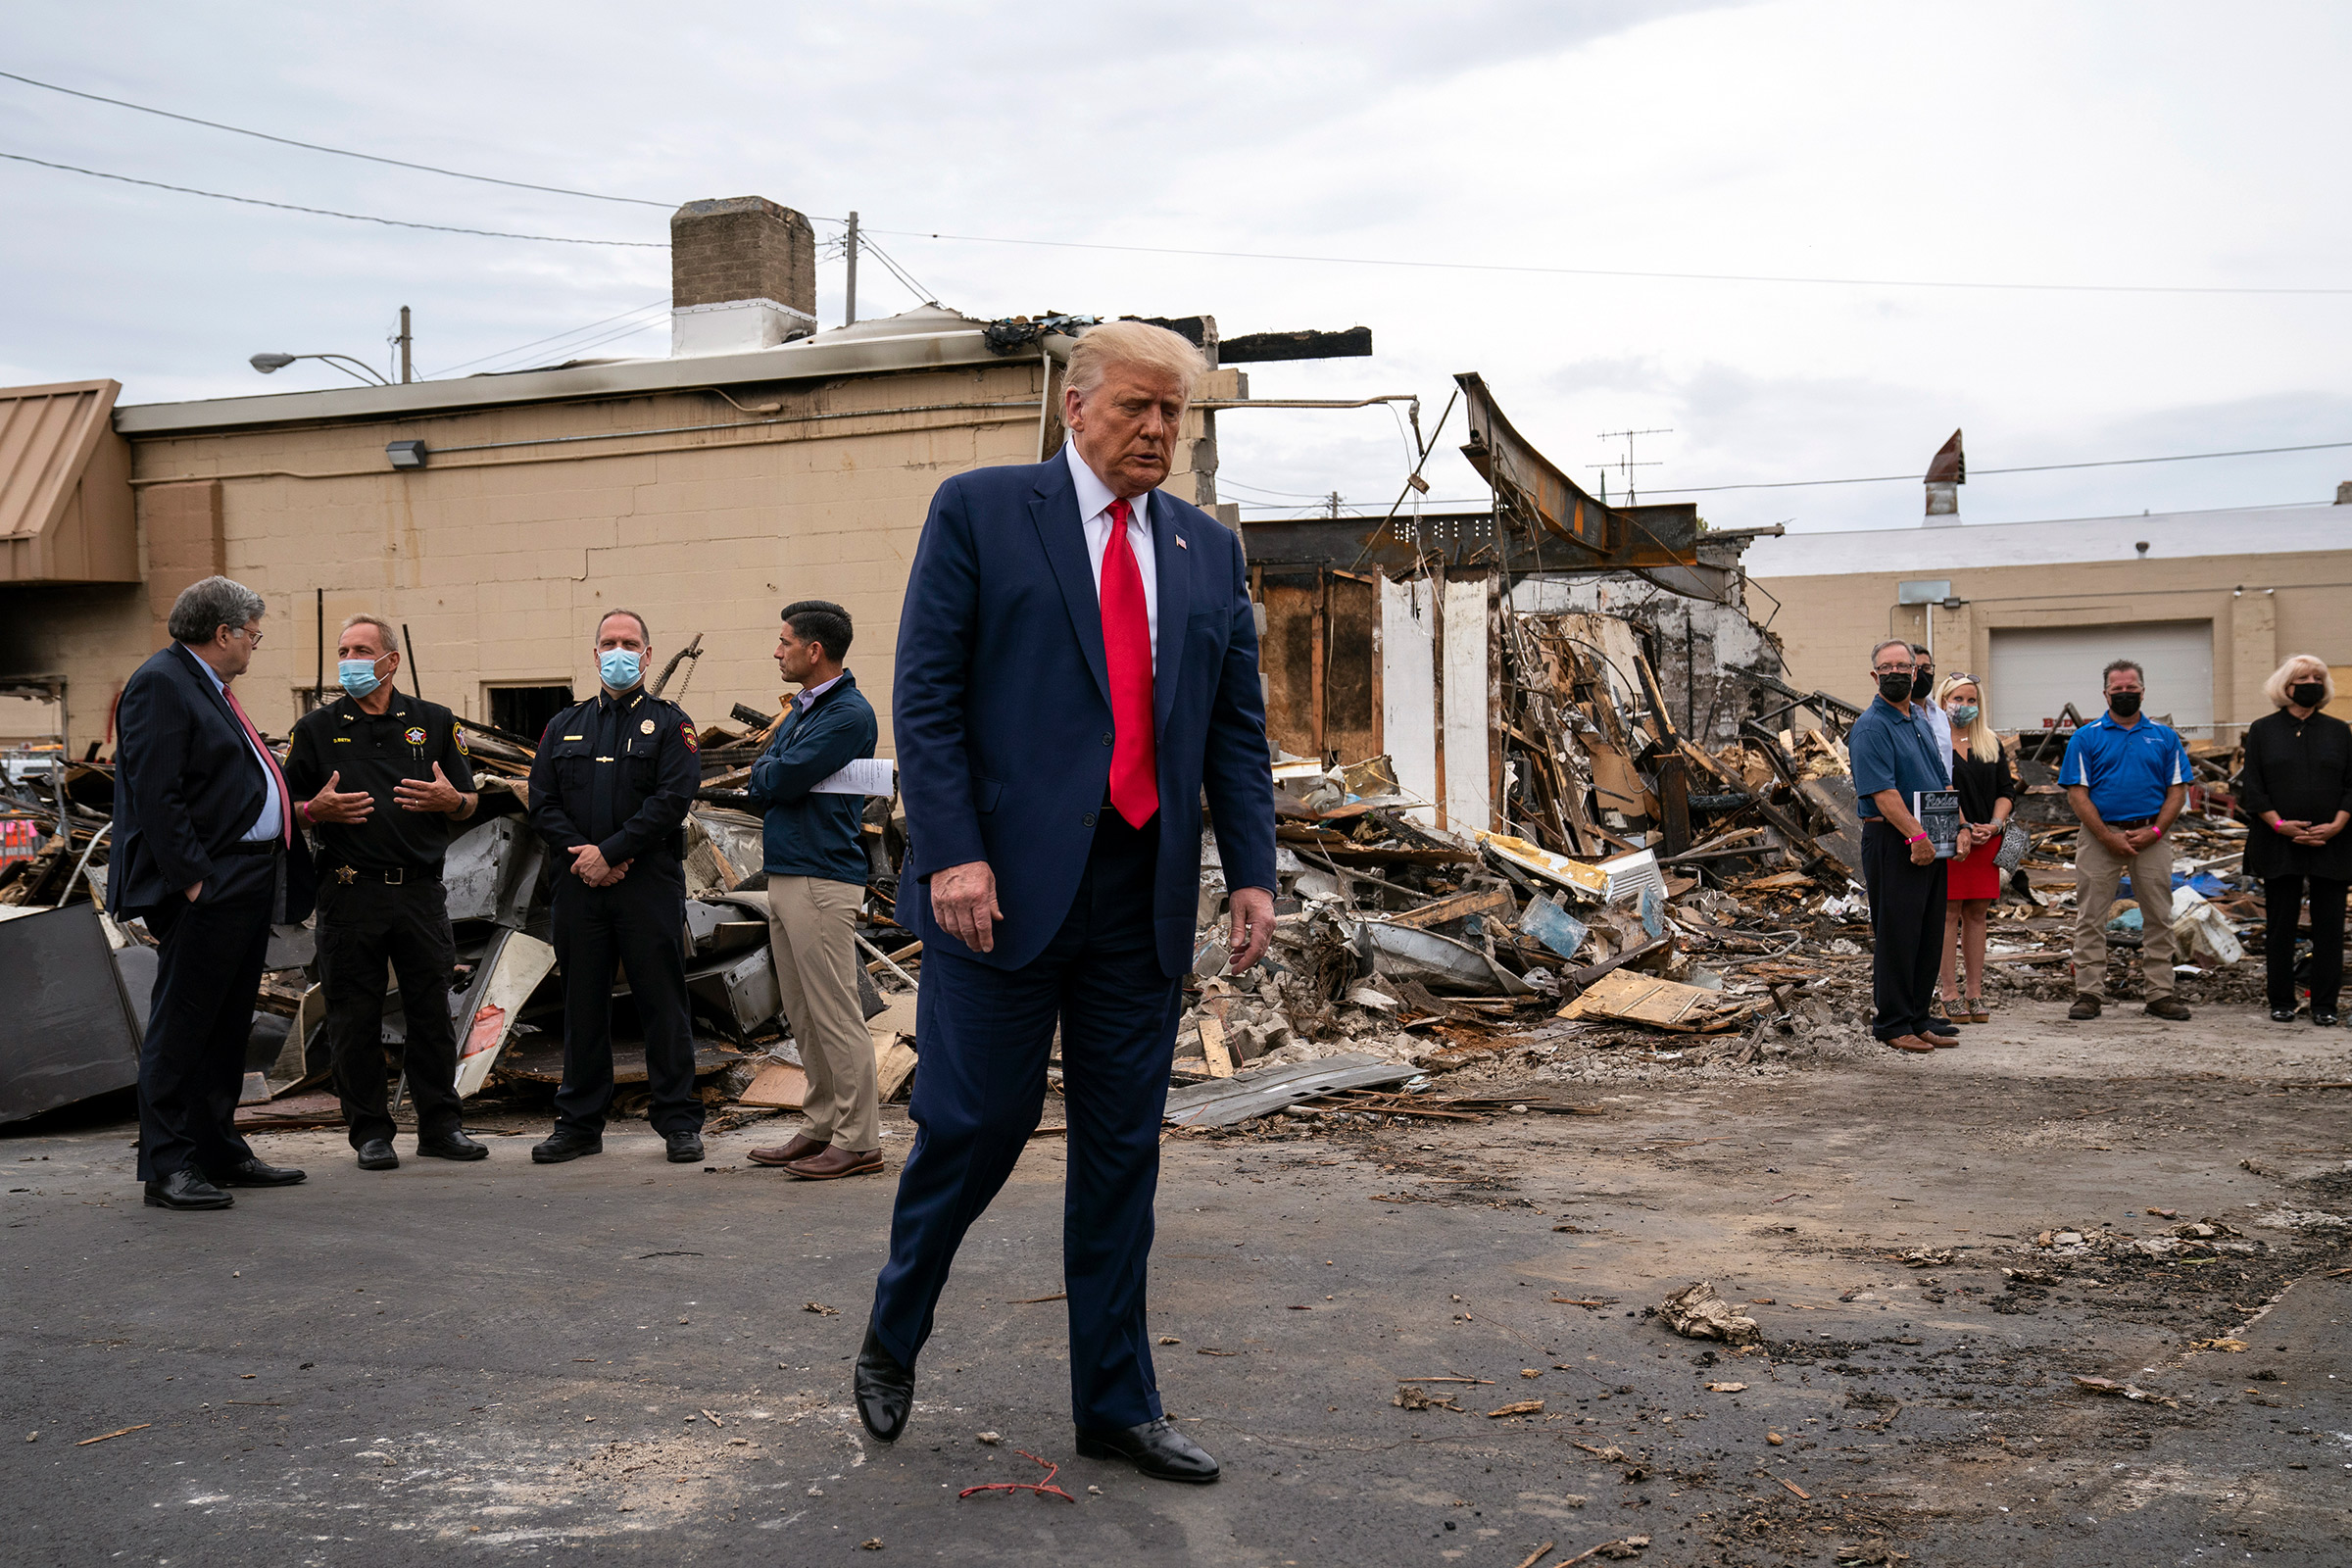 President Donald Trump tours an area Tuesday that was damaged during demonstrations after a police officer shot Jacob Blake in Kenosha, Wis., on Sept. 1, 2020.